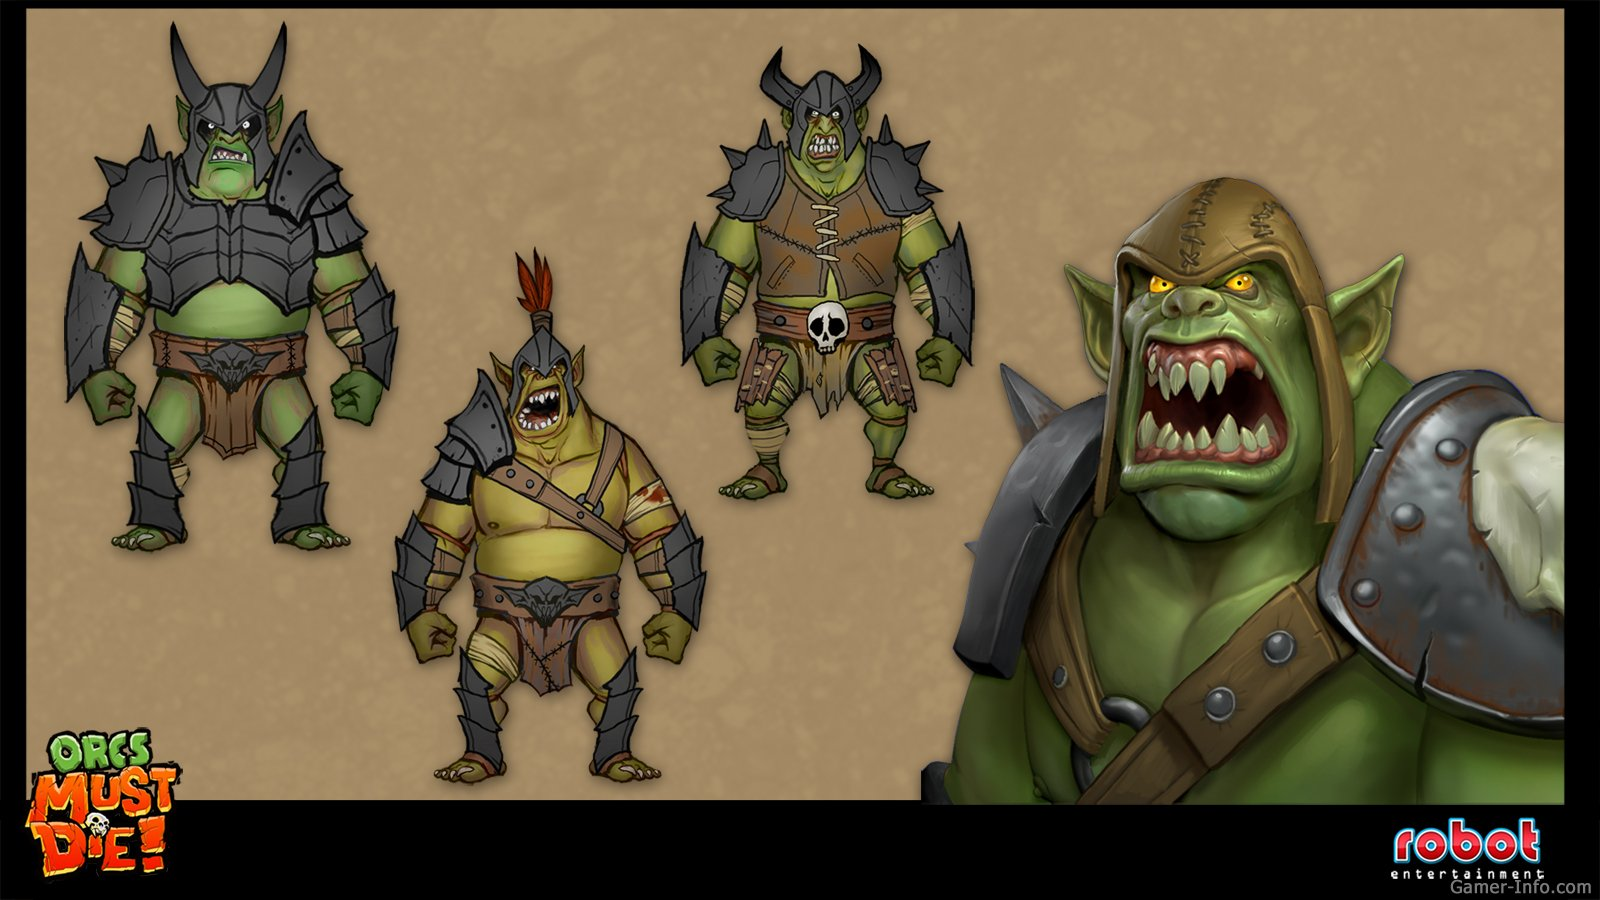 Orcs stories adult picture